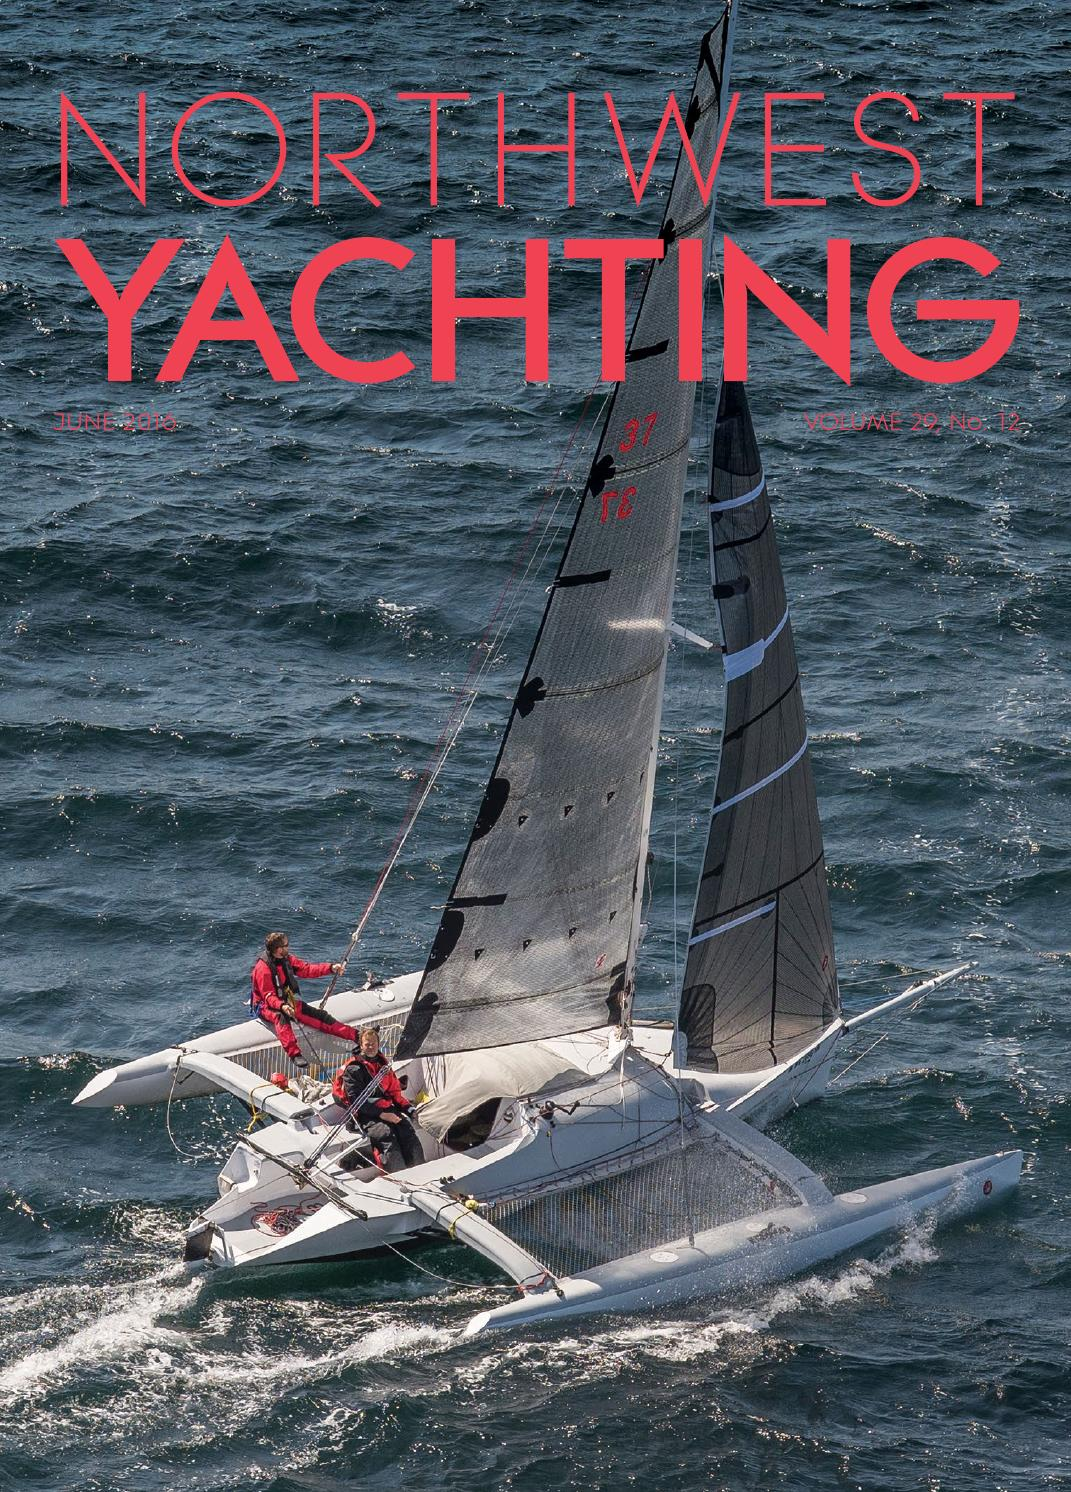 Northwest Yachting - June 2016 by Northwest Yachting - issuu on boat electrical panel, sailing boats parts diagrams, boat motor wiring, boat grounding diagrams, boat wiring diagram printable, boat starter wiring diagram, boat circuit diagram, basic ac electrical power diagrams, marine electrical panel diagrams, boat gauge wiring diagram, basic electrical schematic diagrams, lund boat diagrams, square d electrical panels diagrams, boat construction diagram, boat wire diagrams, boat electrical systems, boat wiring harness, tracker boat electrical diagrams, boat tach wiring diagram, boat diagrams basic,